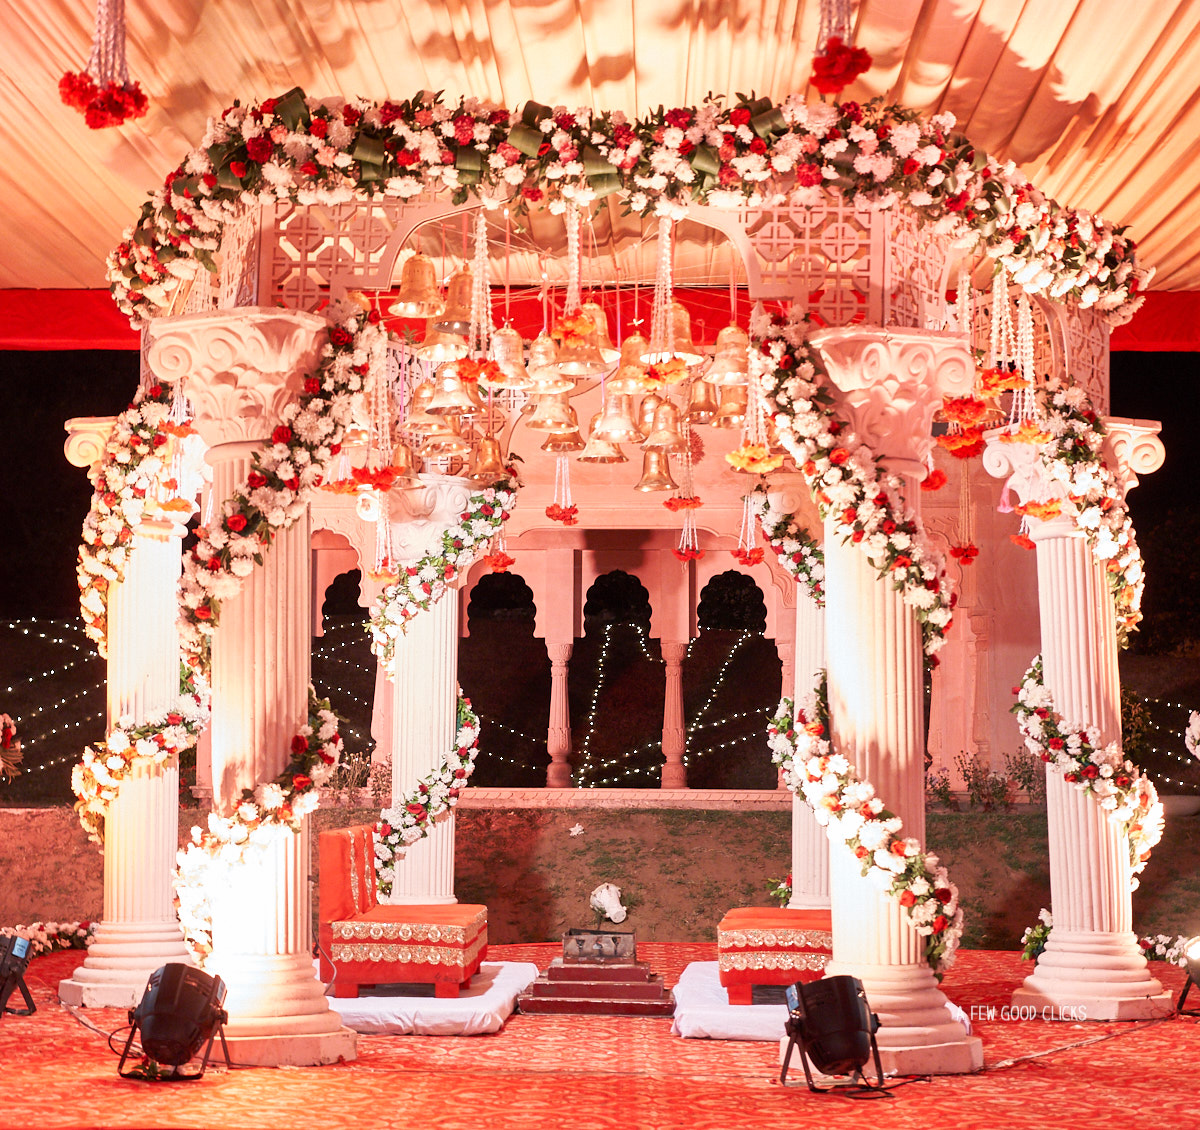 I really liked the use of temple bells in mandap set-up for the fire ceremony.